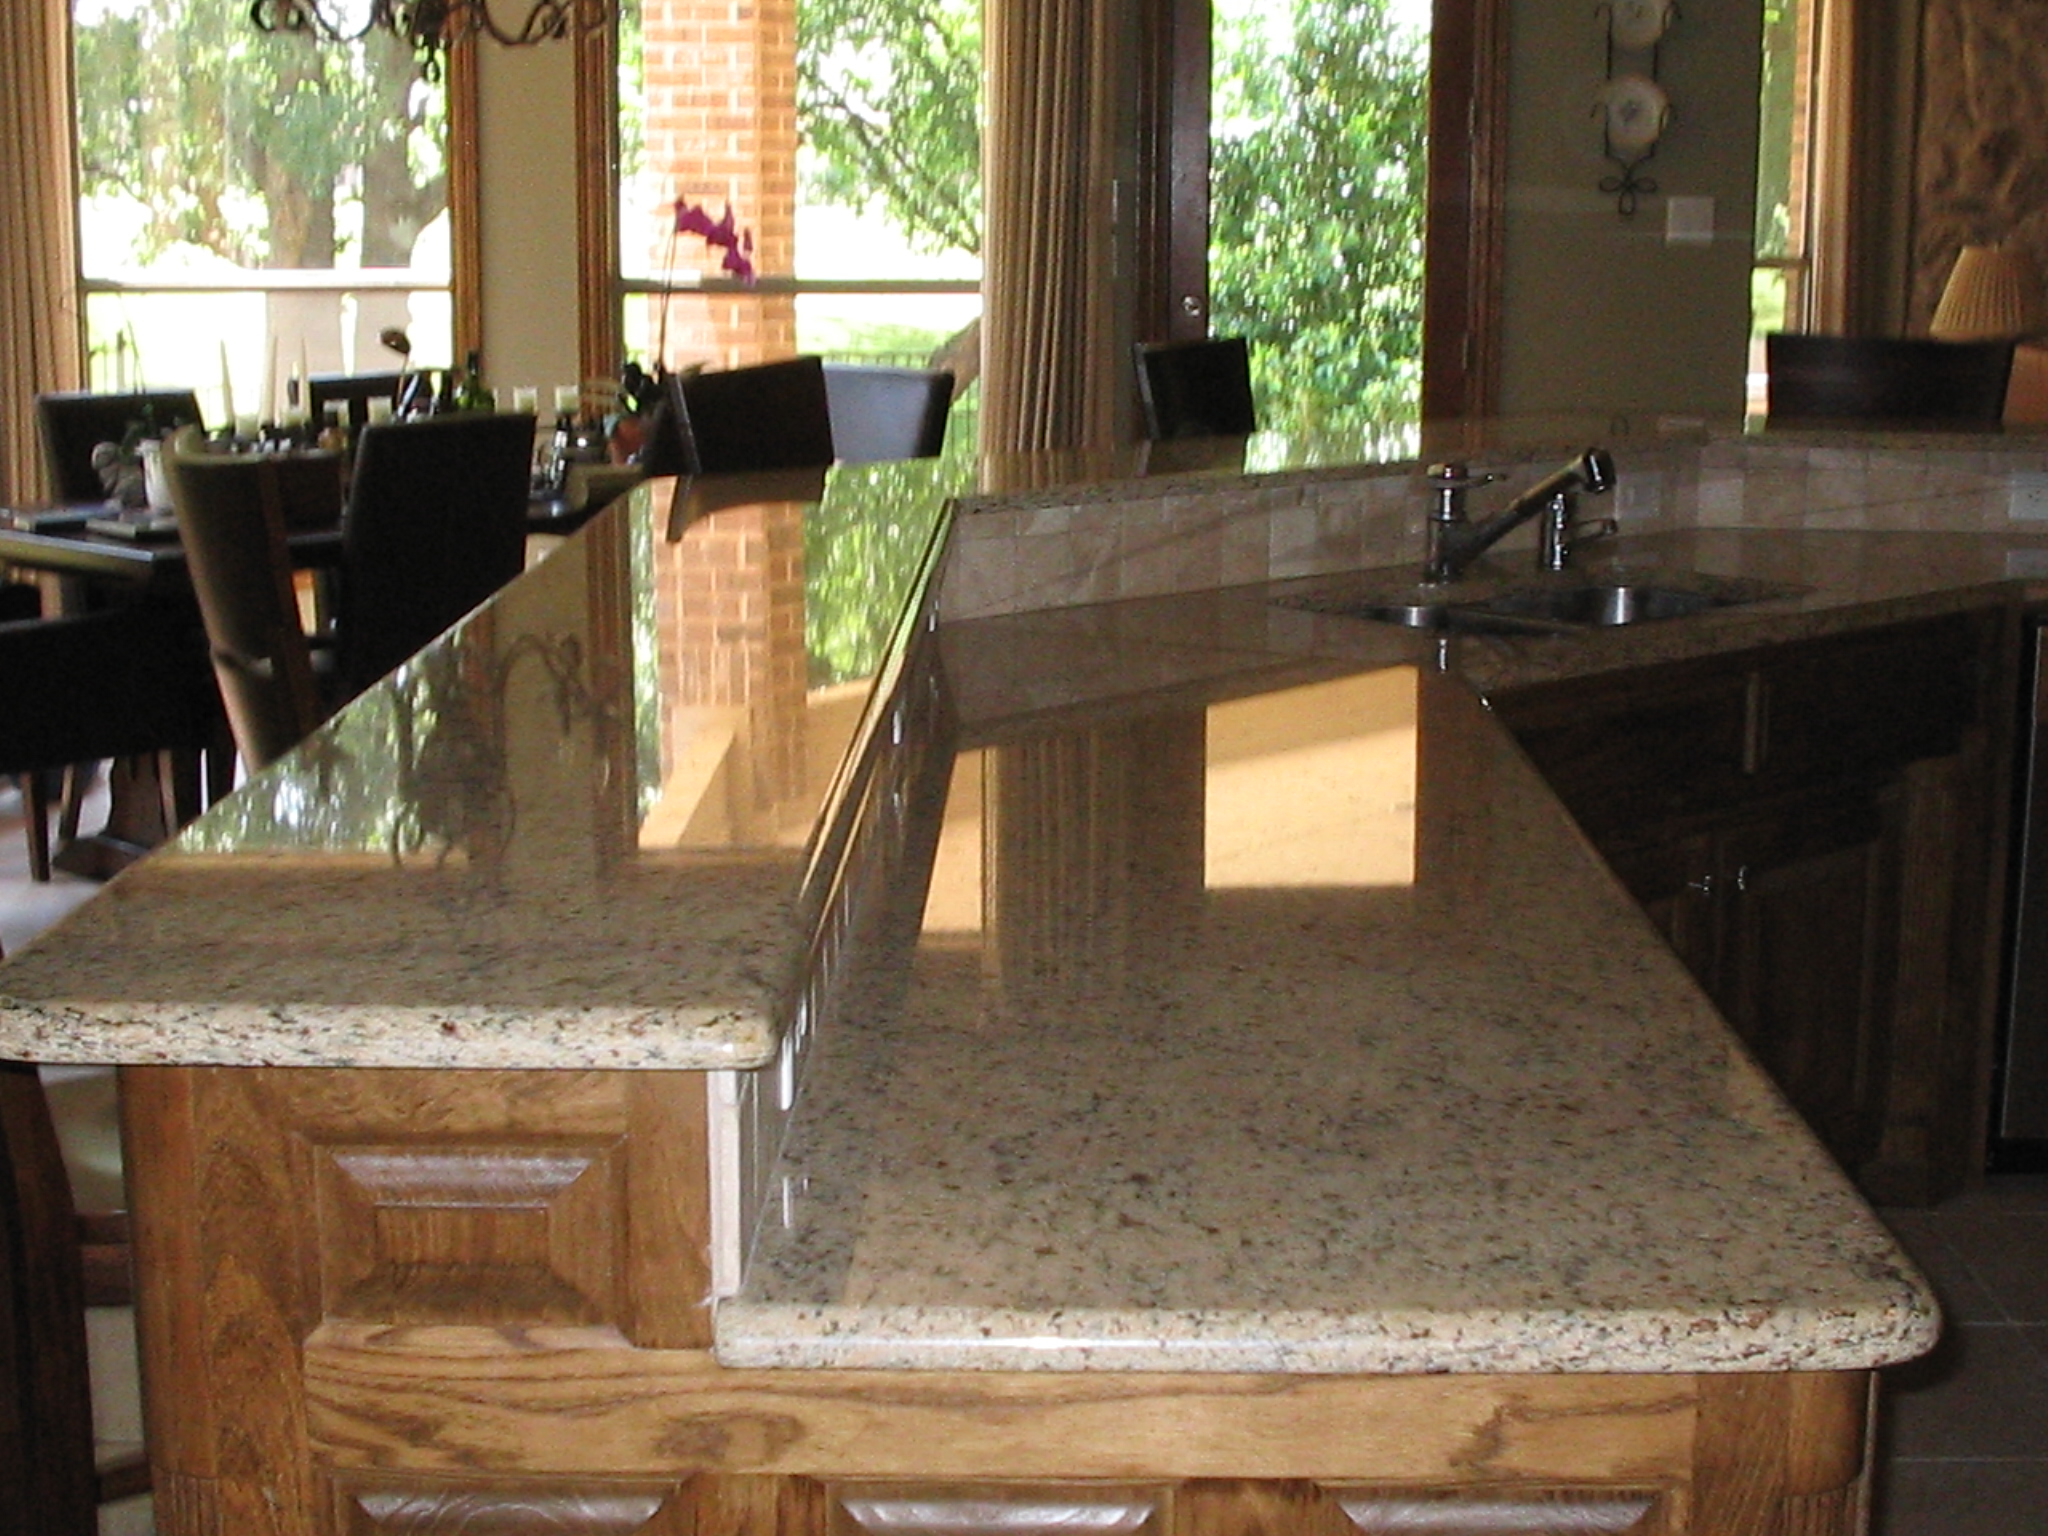 enter backsplash here stone to granite kitchen how image countertops questions caulk description countertop sealing counters